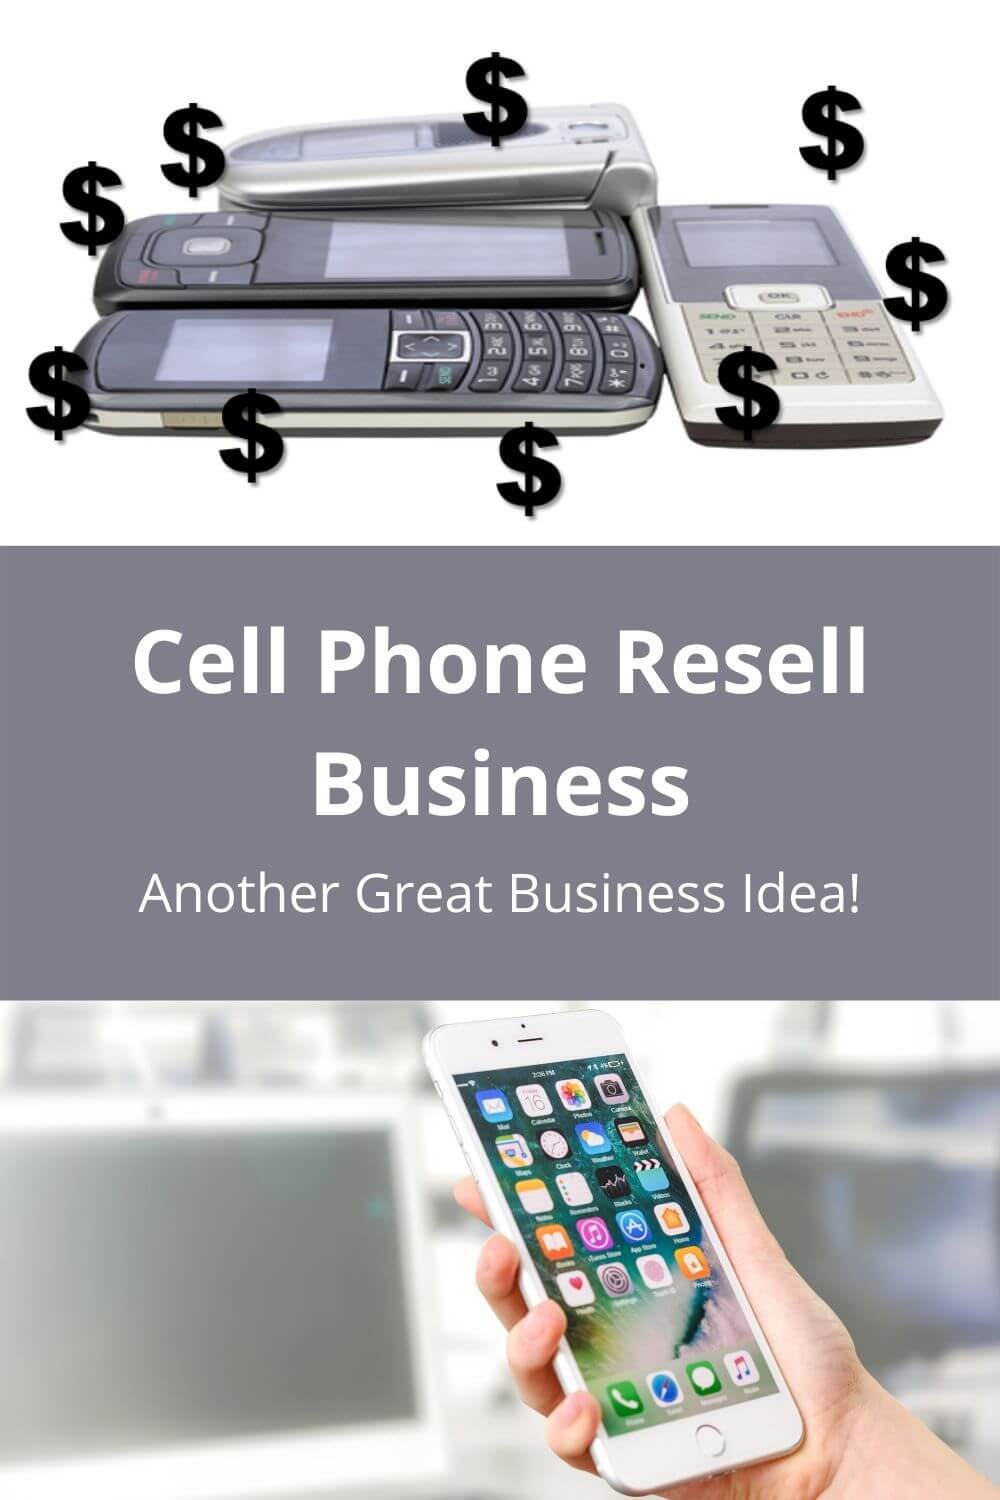 Cell Phone Resell Business - Another Great Business Idea